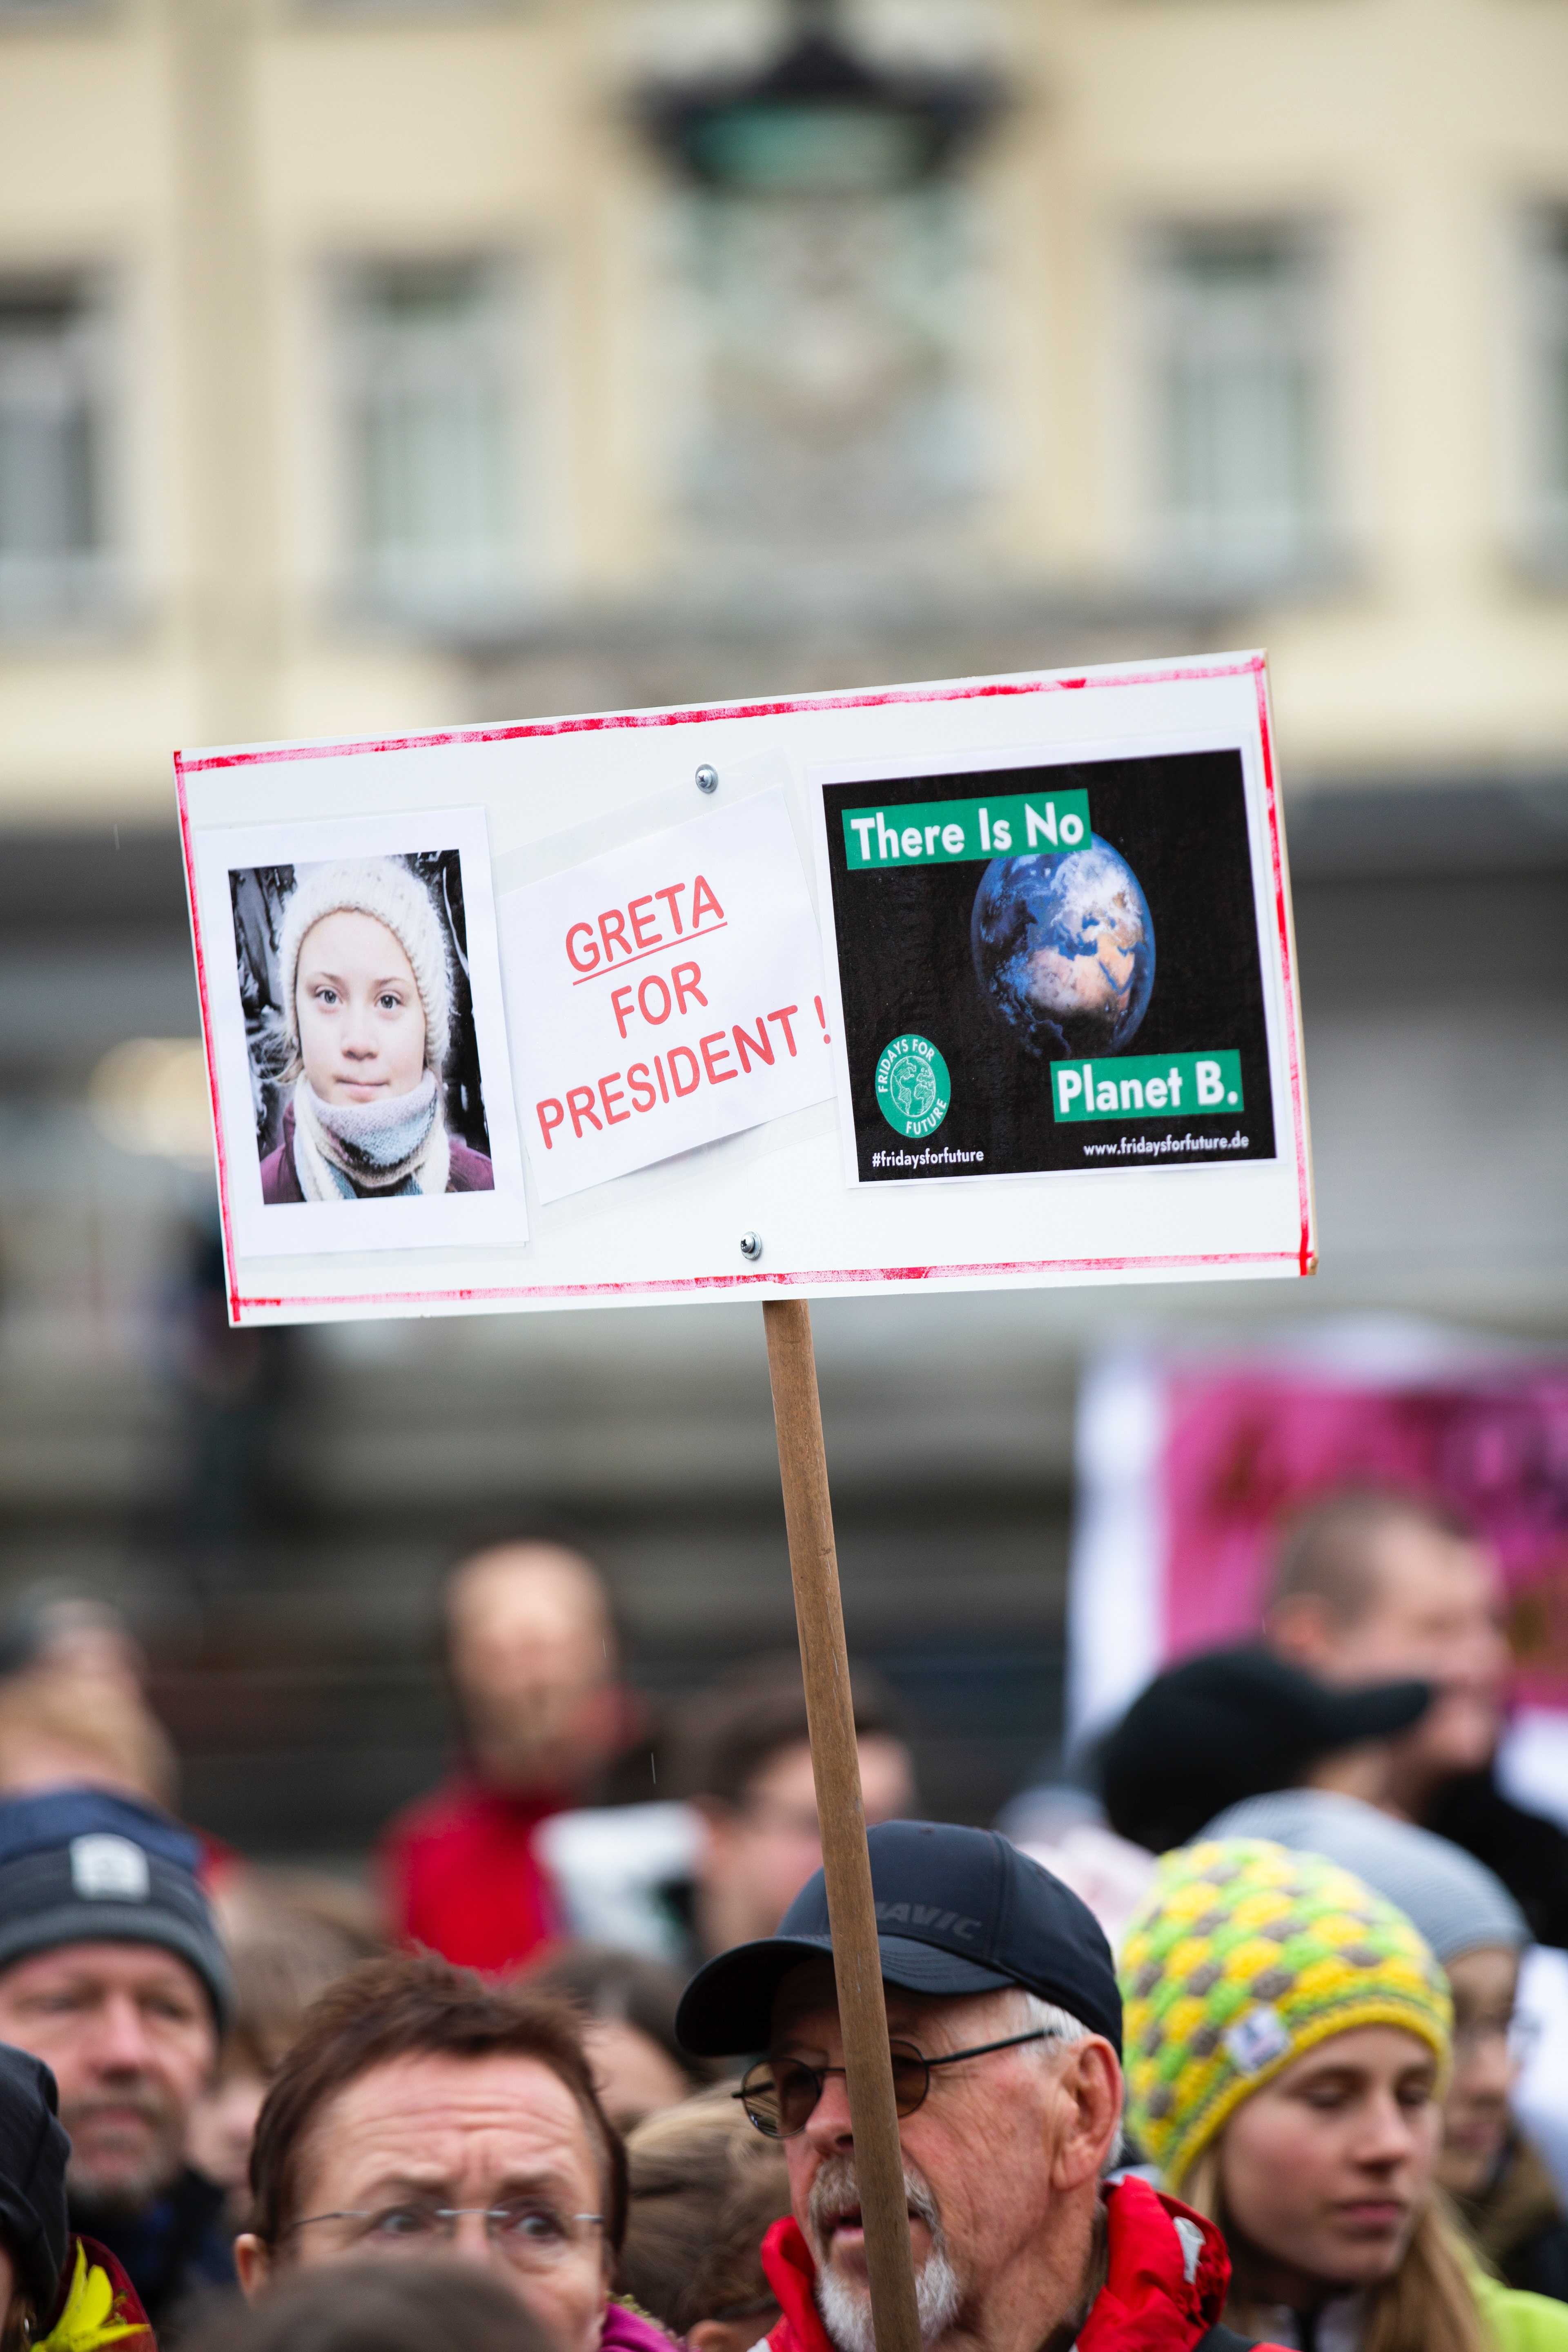 Protest sign with Greta Thunberg's face